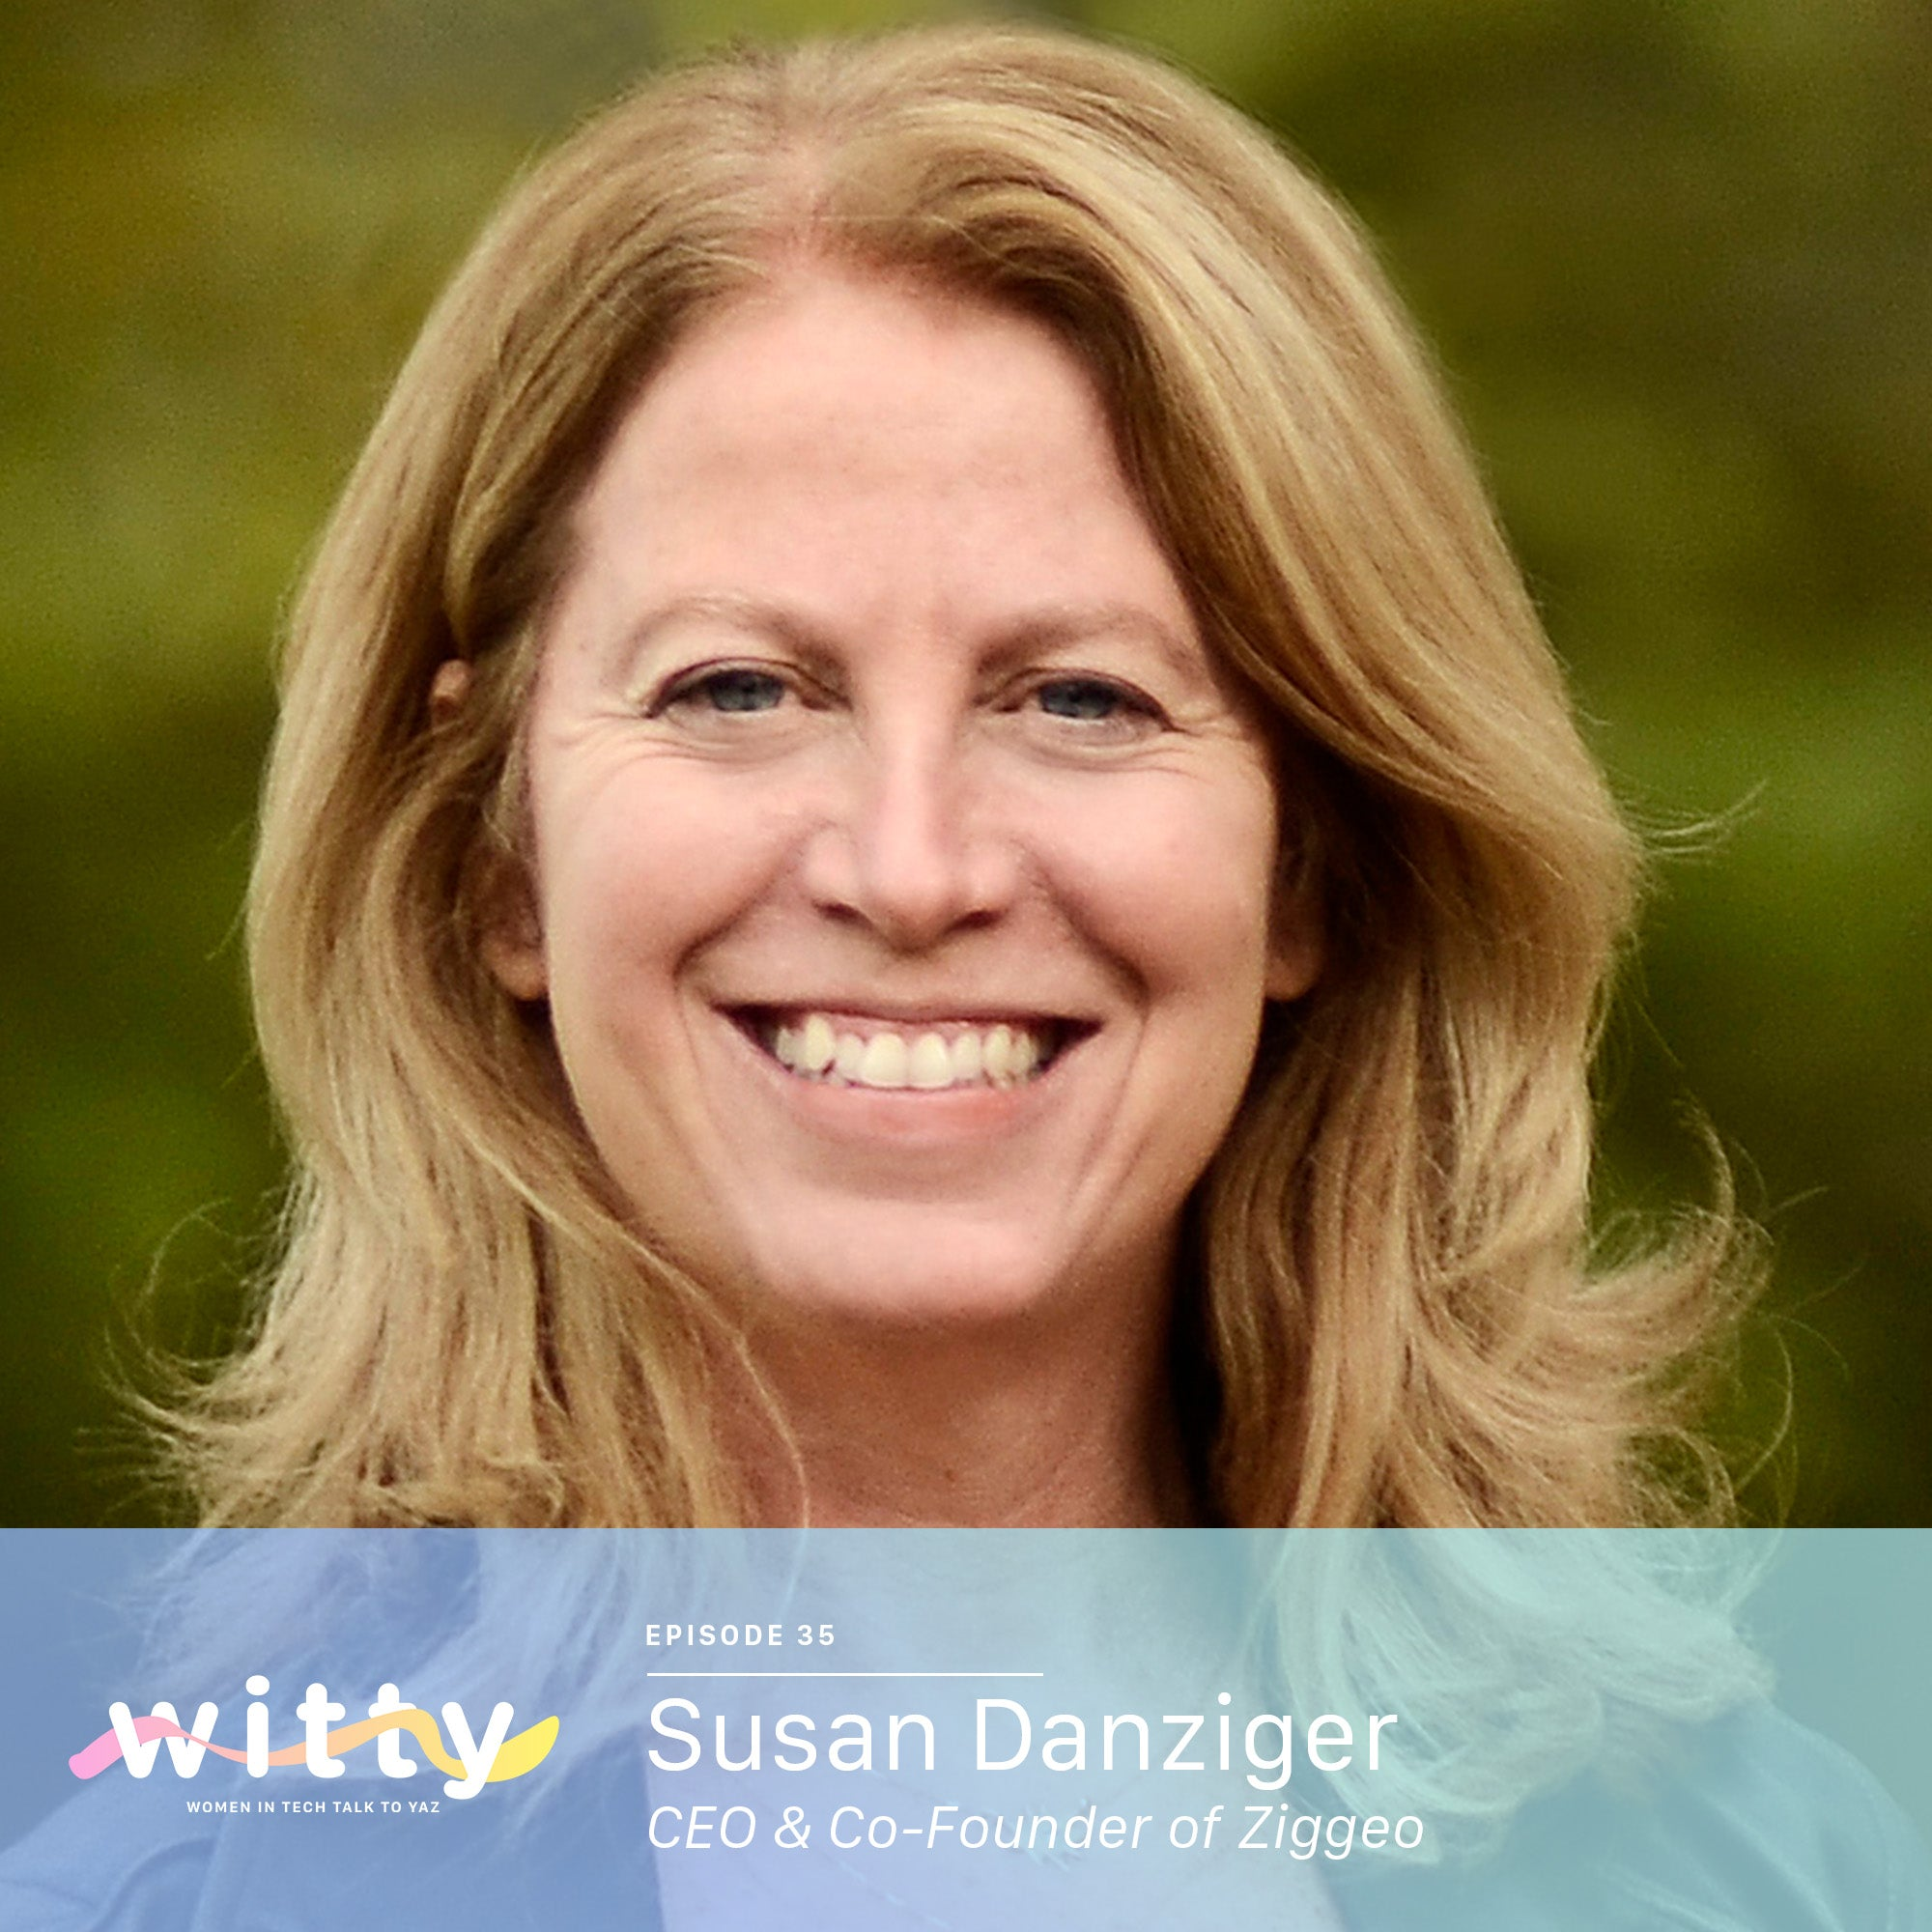 Ep. 35: Two more lines of code and you get dinner (Susan Danziger)